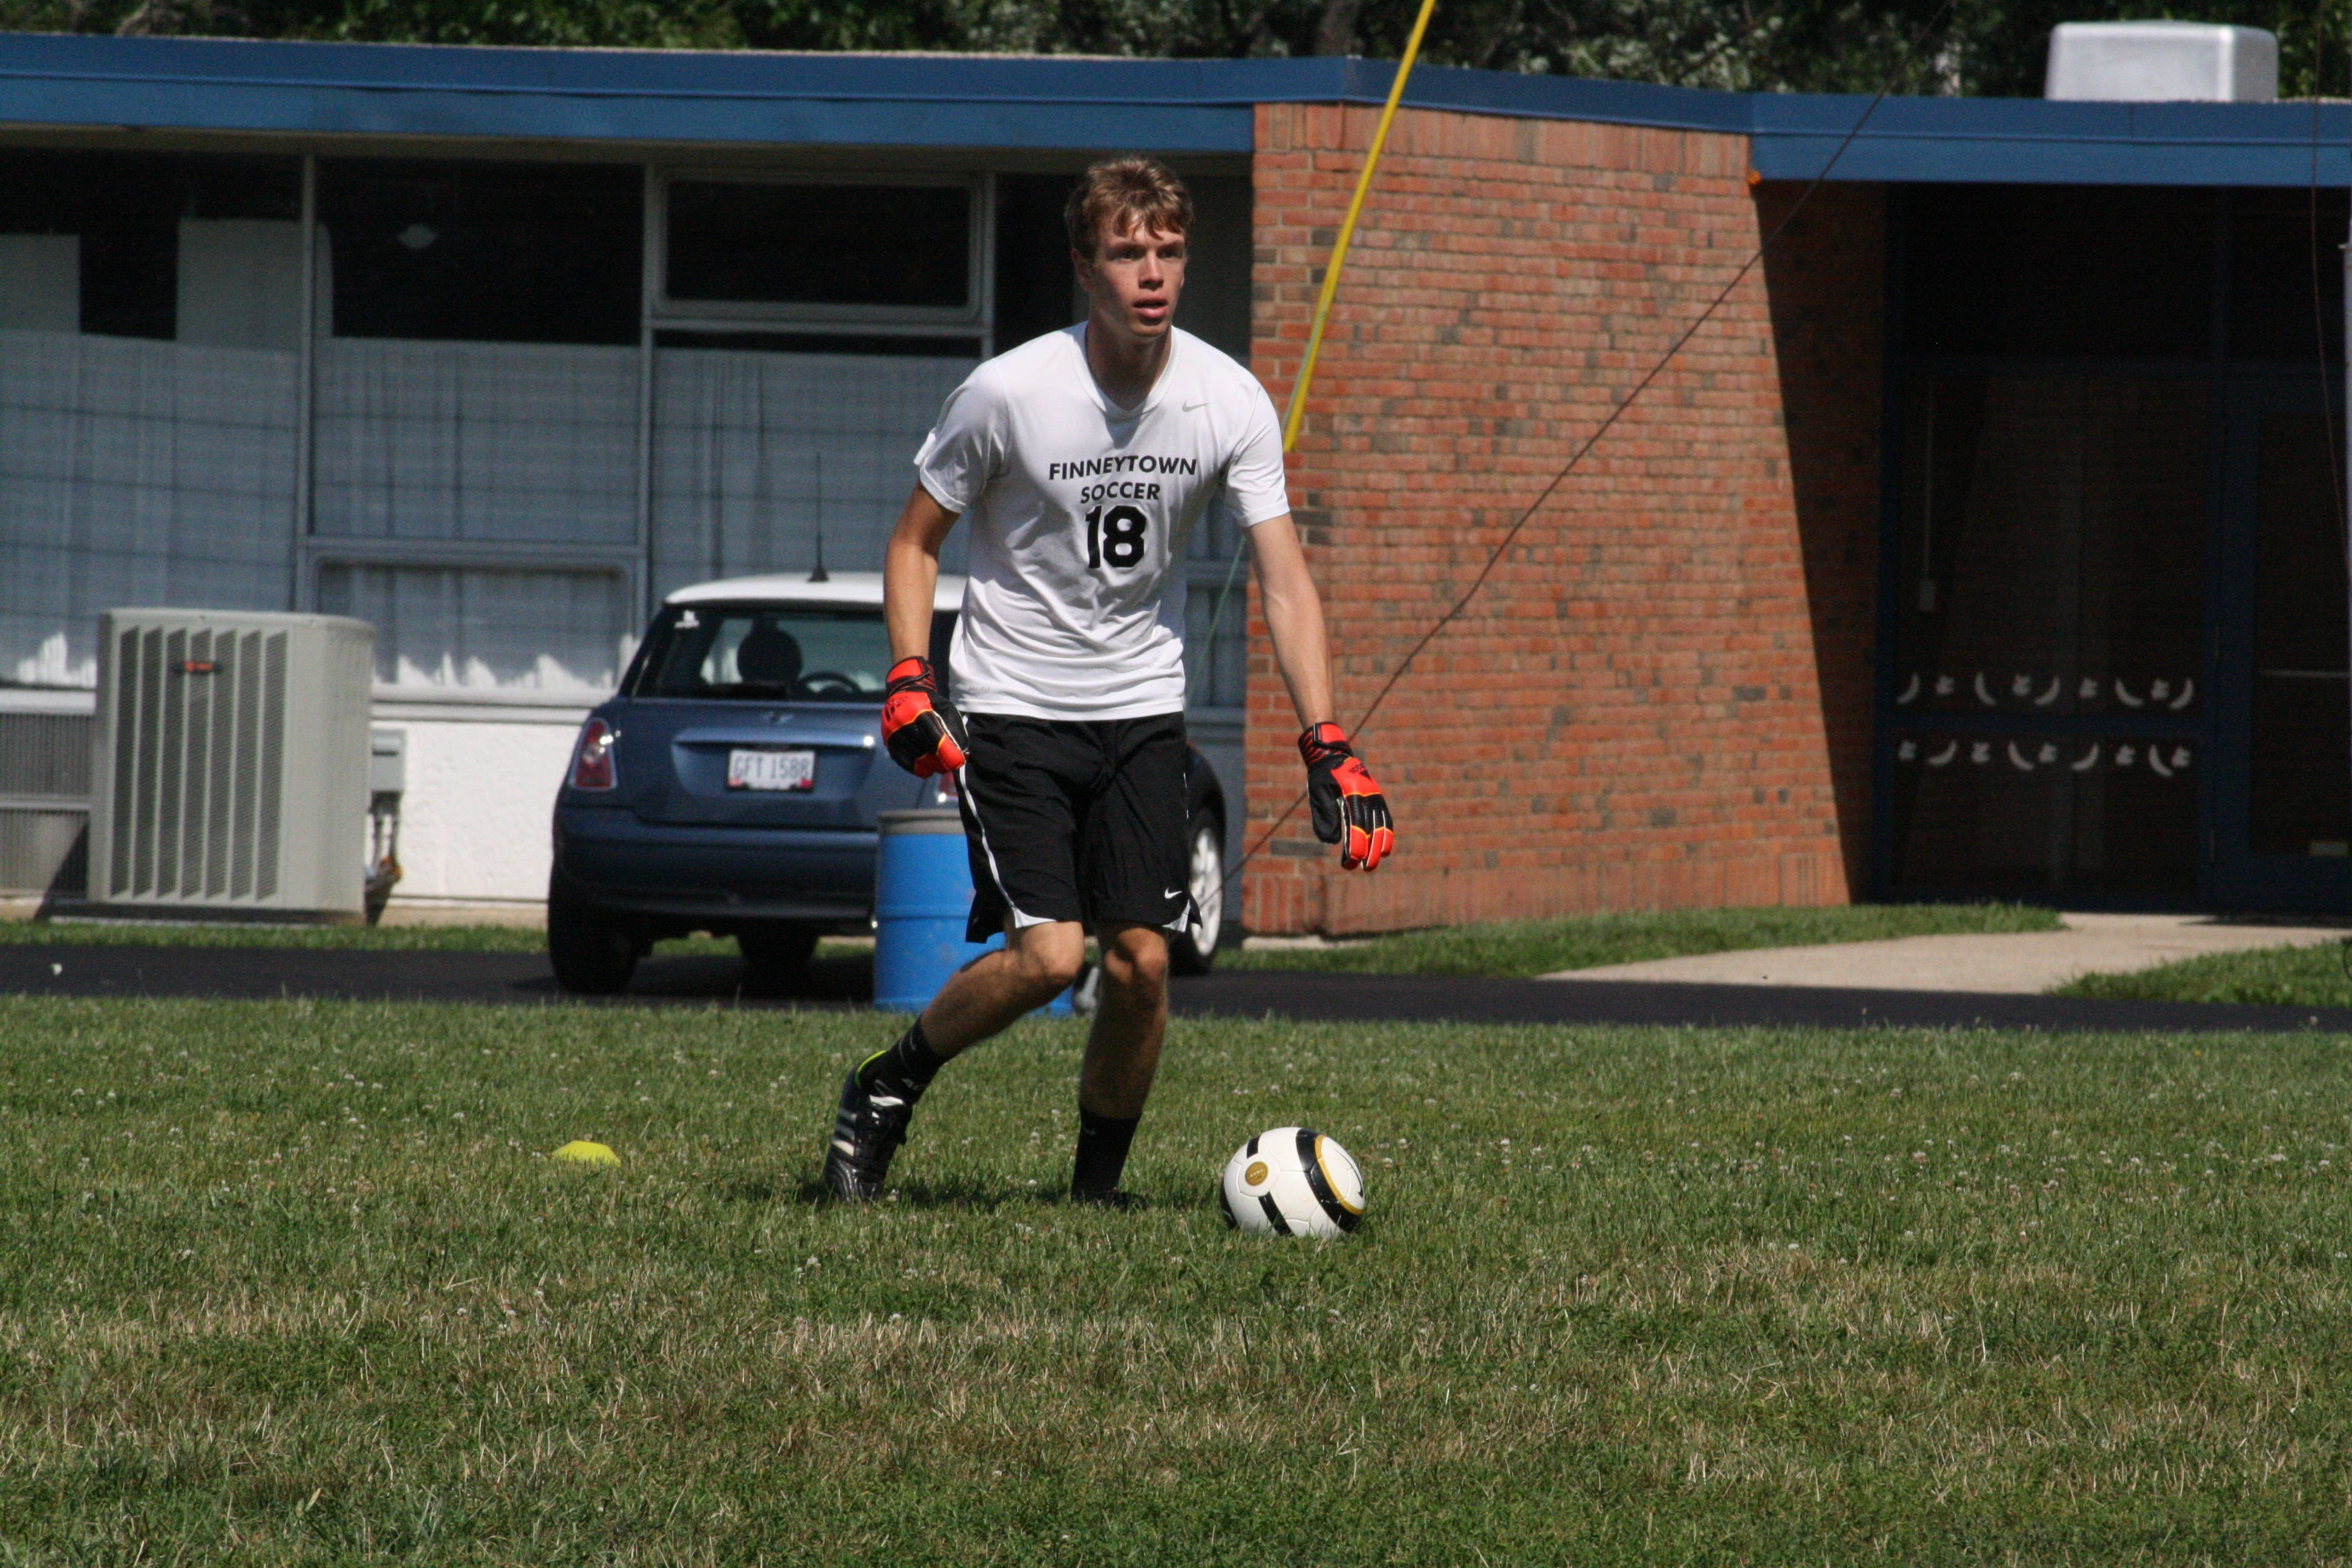 Finneytown High School senior goalkeeper Luke Steimle handles the ball with his feet during a practice drill Aug. 14. Steimle turned in an .850 save percentage last season.